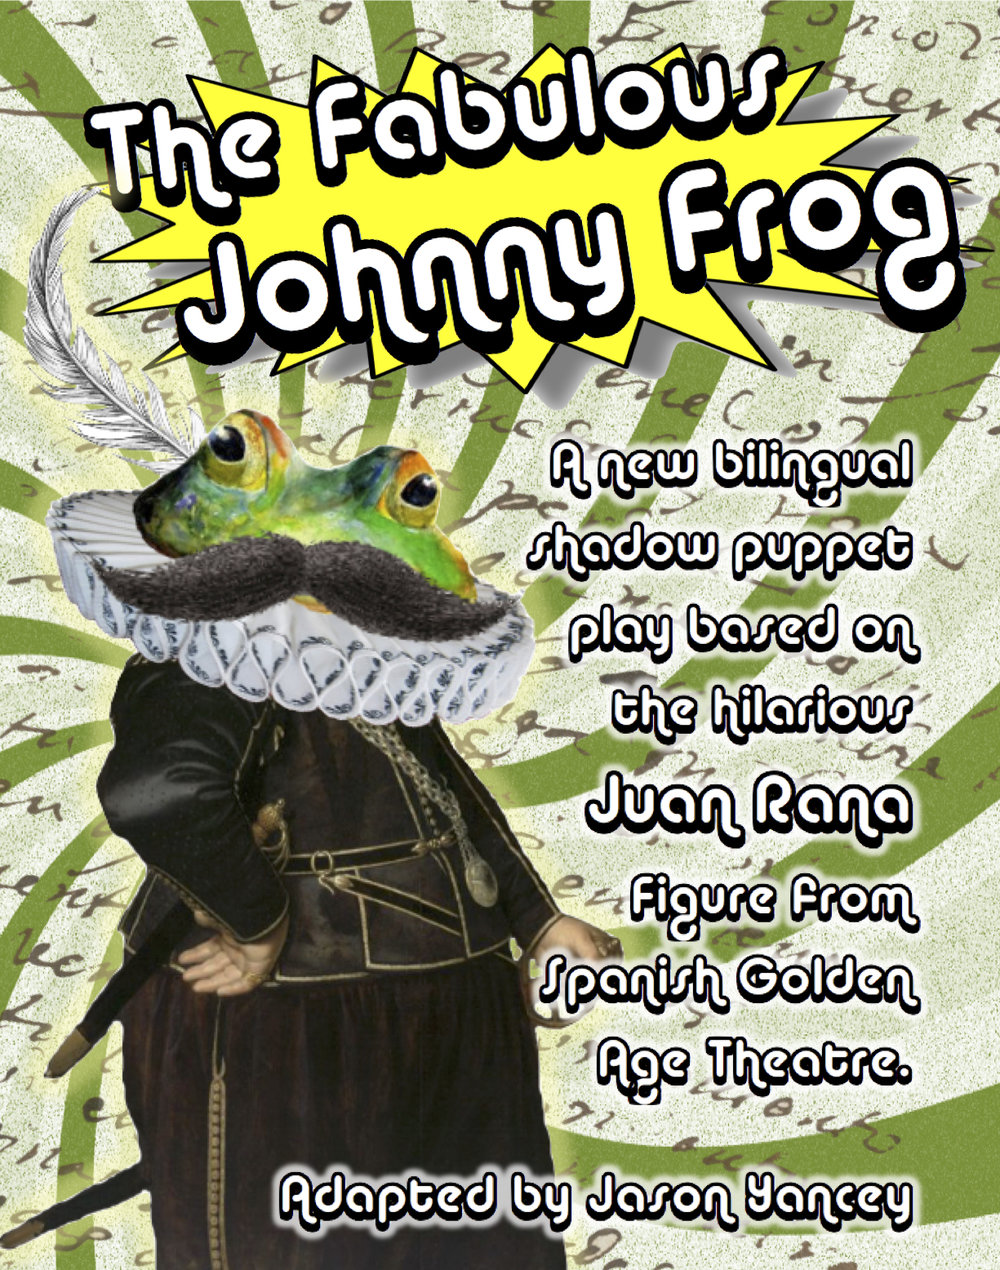 The Fabulous Johnny Frog (2018) - Heroic. Brilliant. Tenacious. Johnny Frog is none of these things. Tossed around in a world of calamities and contradictions the hapless Johnny Frog is a simple man, a cowardly man, hungrier for a sandwich than for adventure. He's the mayor of his village but most of the time he has no idea what's going on around him. Why, for example, will he die if he smells his favorite foods? How did he get challenged to a duel? And probably most perplexing, how is it possible that he, a man, is pregnant? This entertaining and educational presentation uses innovative shadow puppetry to introduce young audiences to seventeenth century Spanish theatre and a play format known as the entremés, featuring Spain's most celebrated stage bufoon, Juan Rana: the Fabulous Johnny Frog!